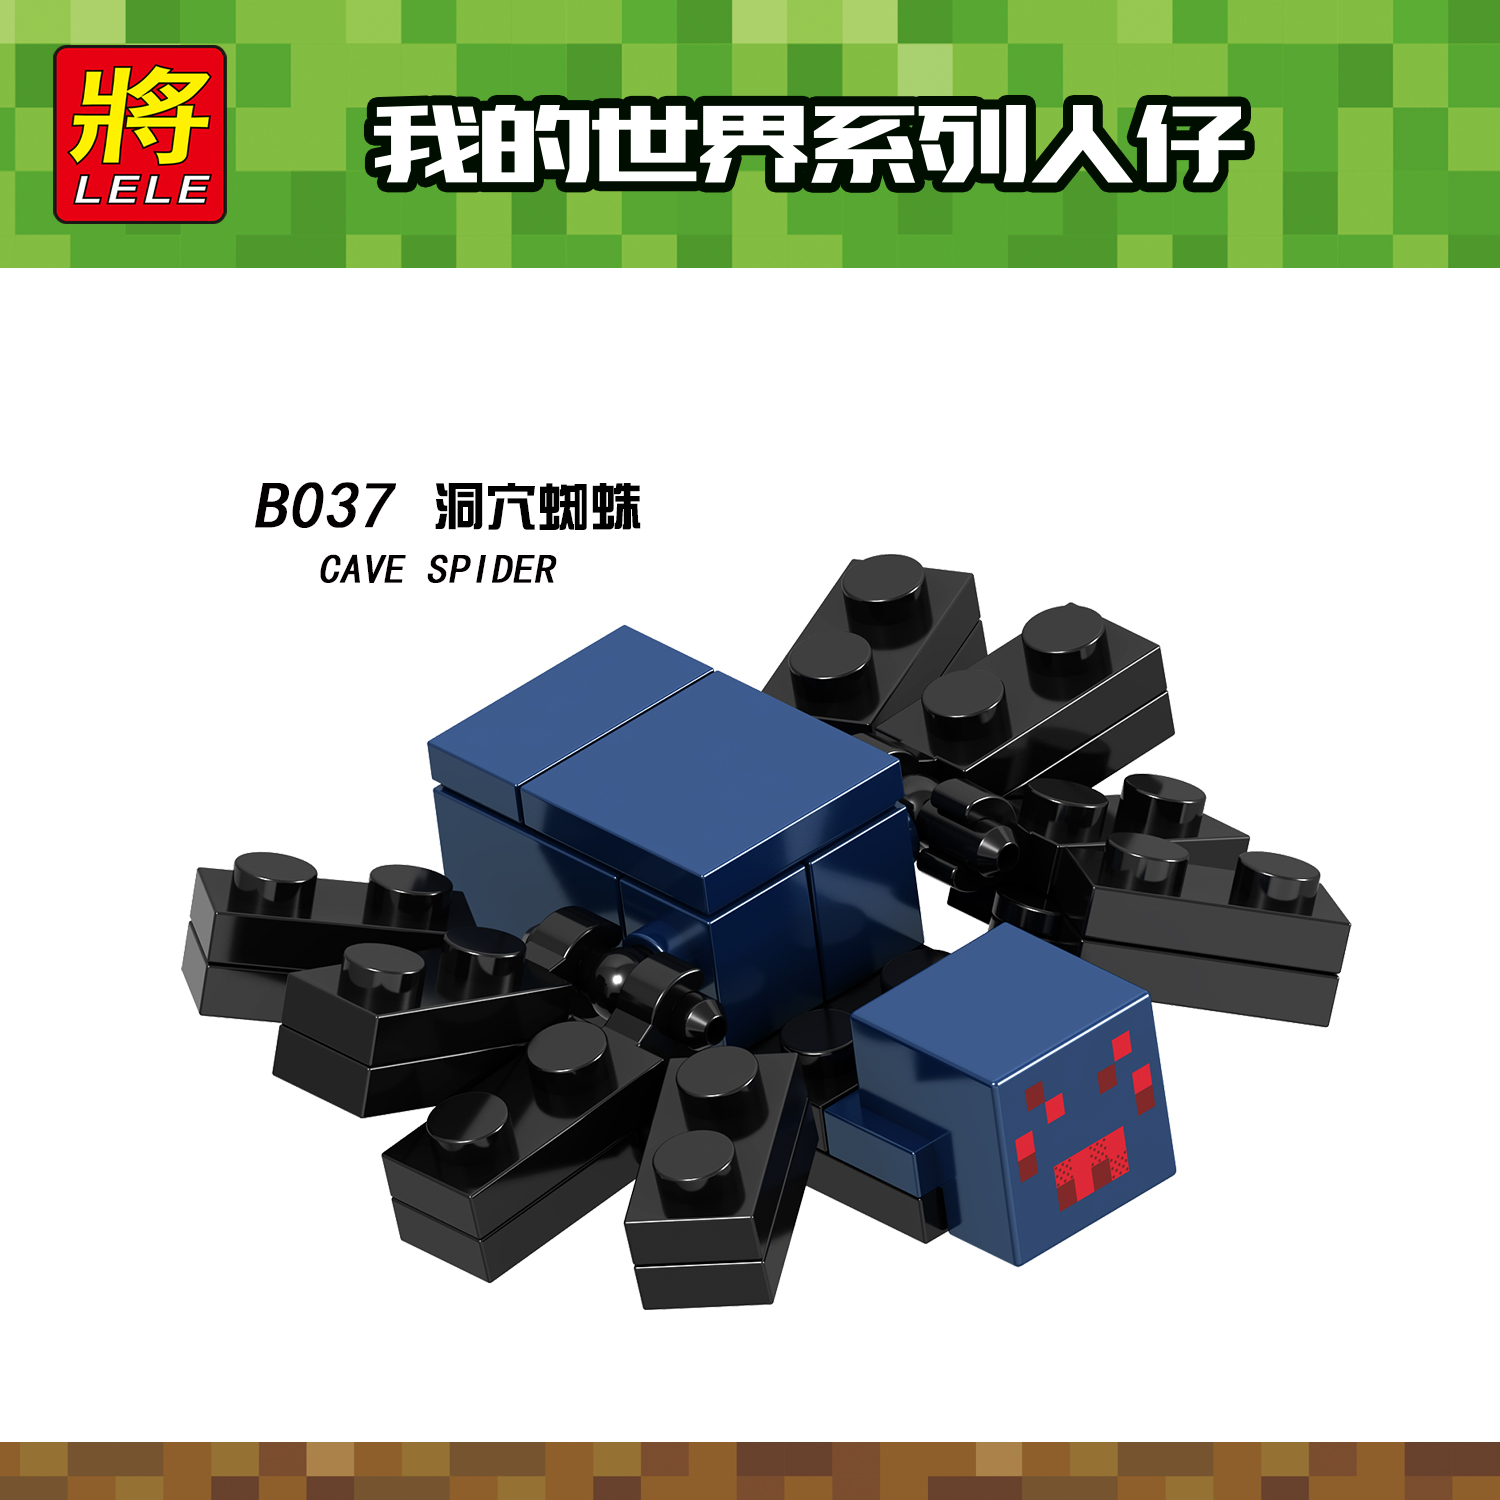 US $0 9 |Single Sale Minecraft Cave Spider Building Blocks Toys For  Children Compatible Legoing Minecrafts Legoings Figues Bricks B037-in  Blocks from